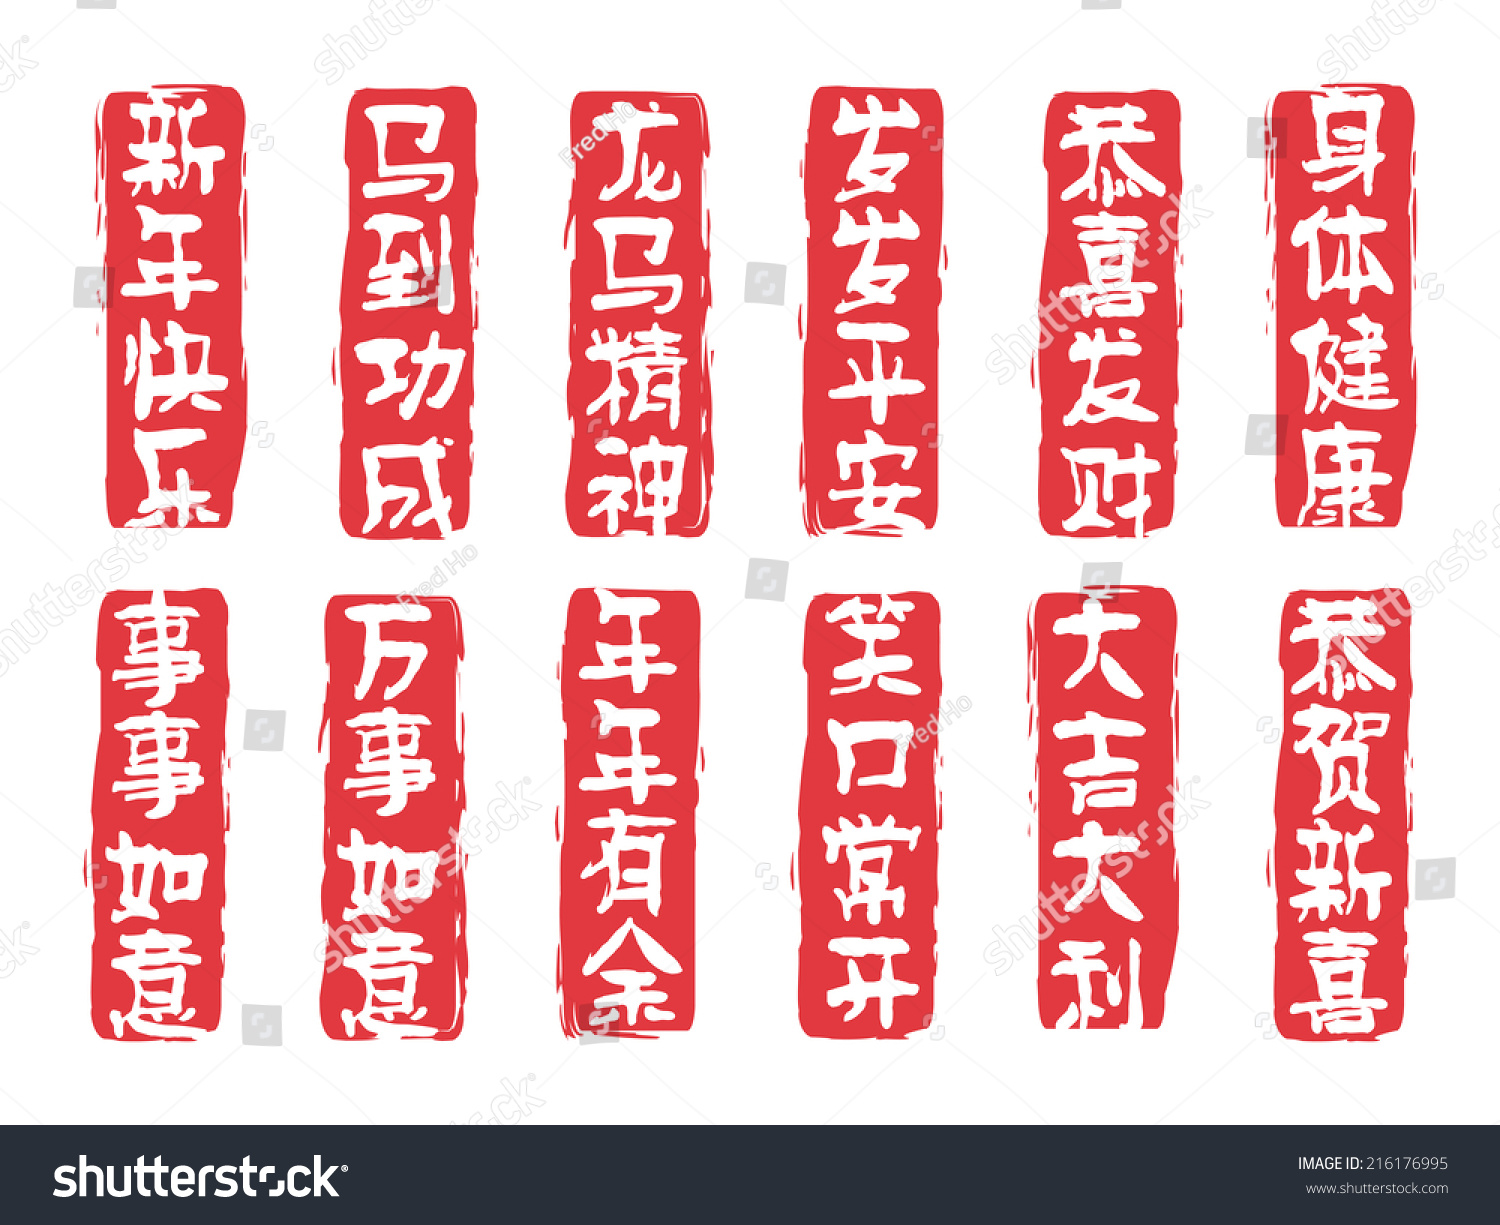 Vector chinese new year greetings red stock vector 216176995 vector chinese new year greetings red cutouts 1st row happy new year success kristyandbryce Choice Image